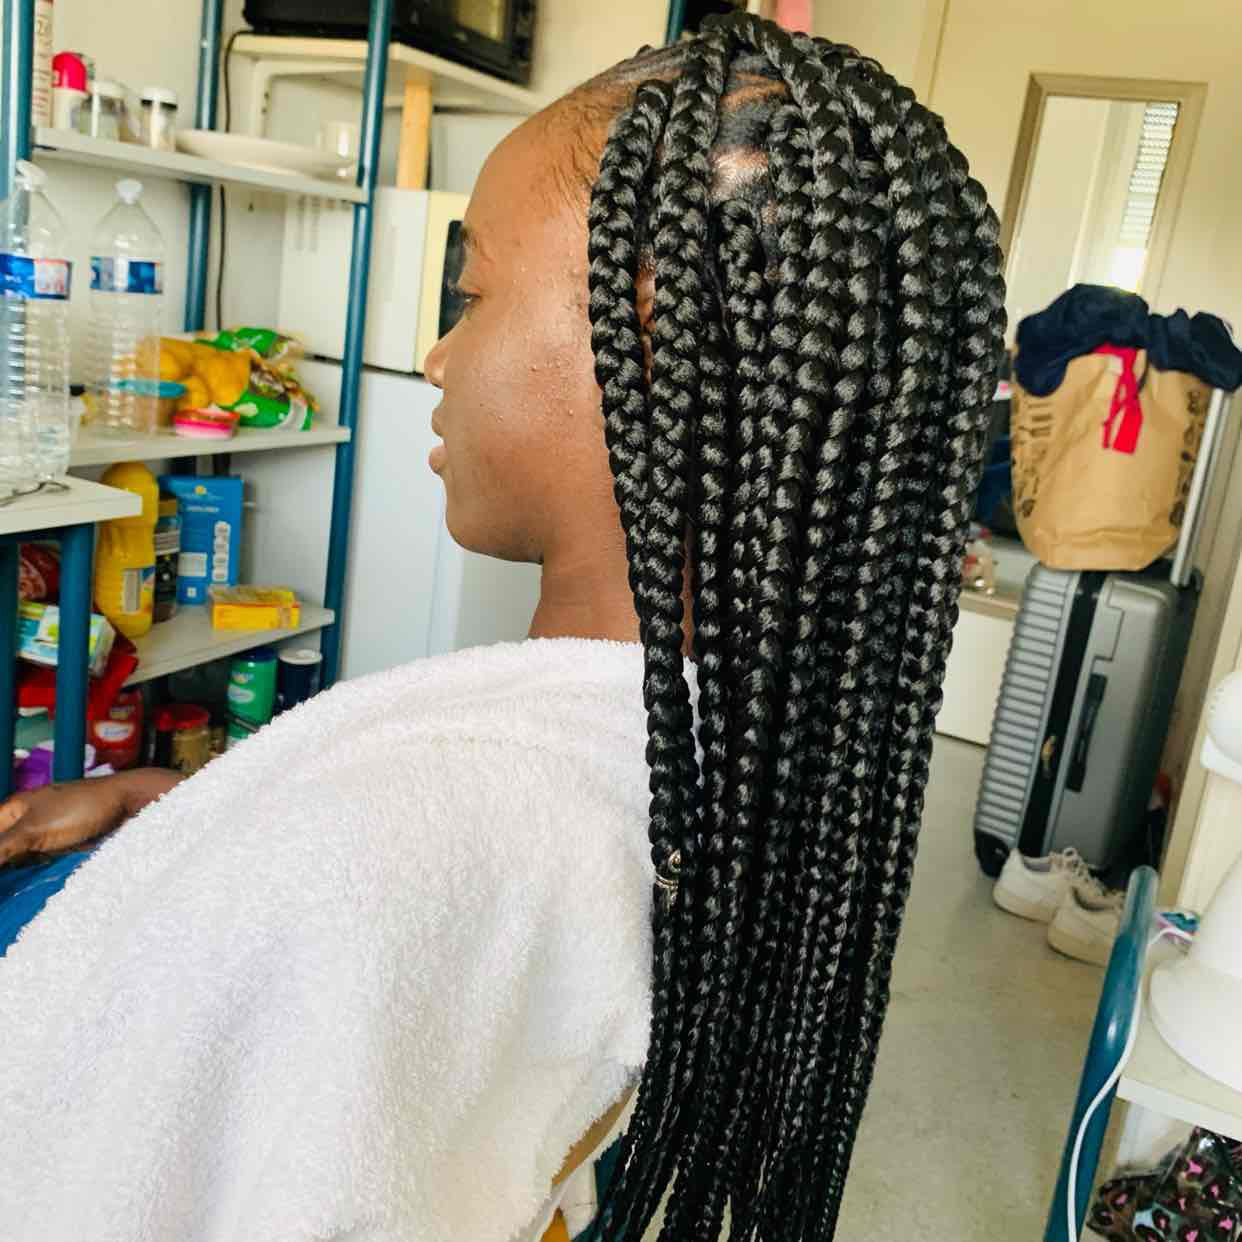 salon de coiffure afro tresse tresses box braids crochet braids vanilles tissages paris 75 77 78 91 92 93 94 95 IPJILOQQ